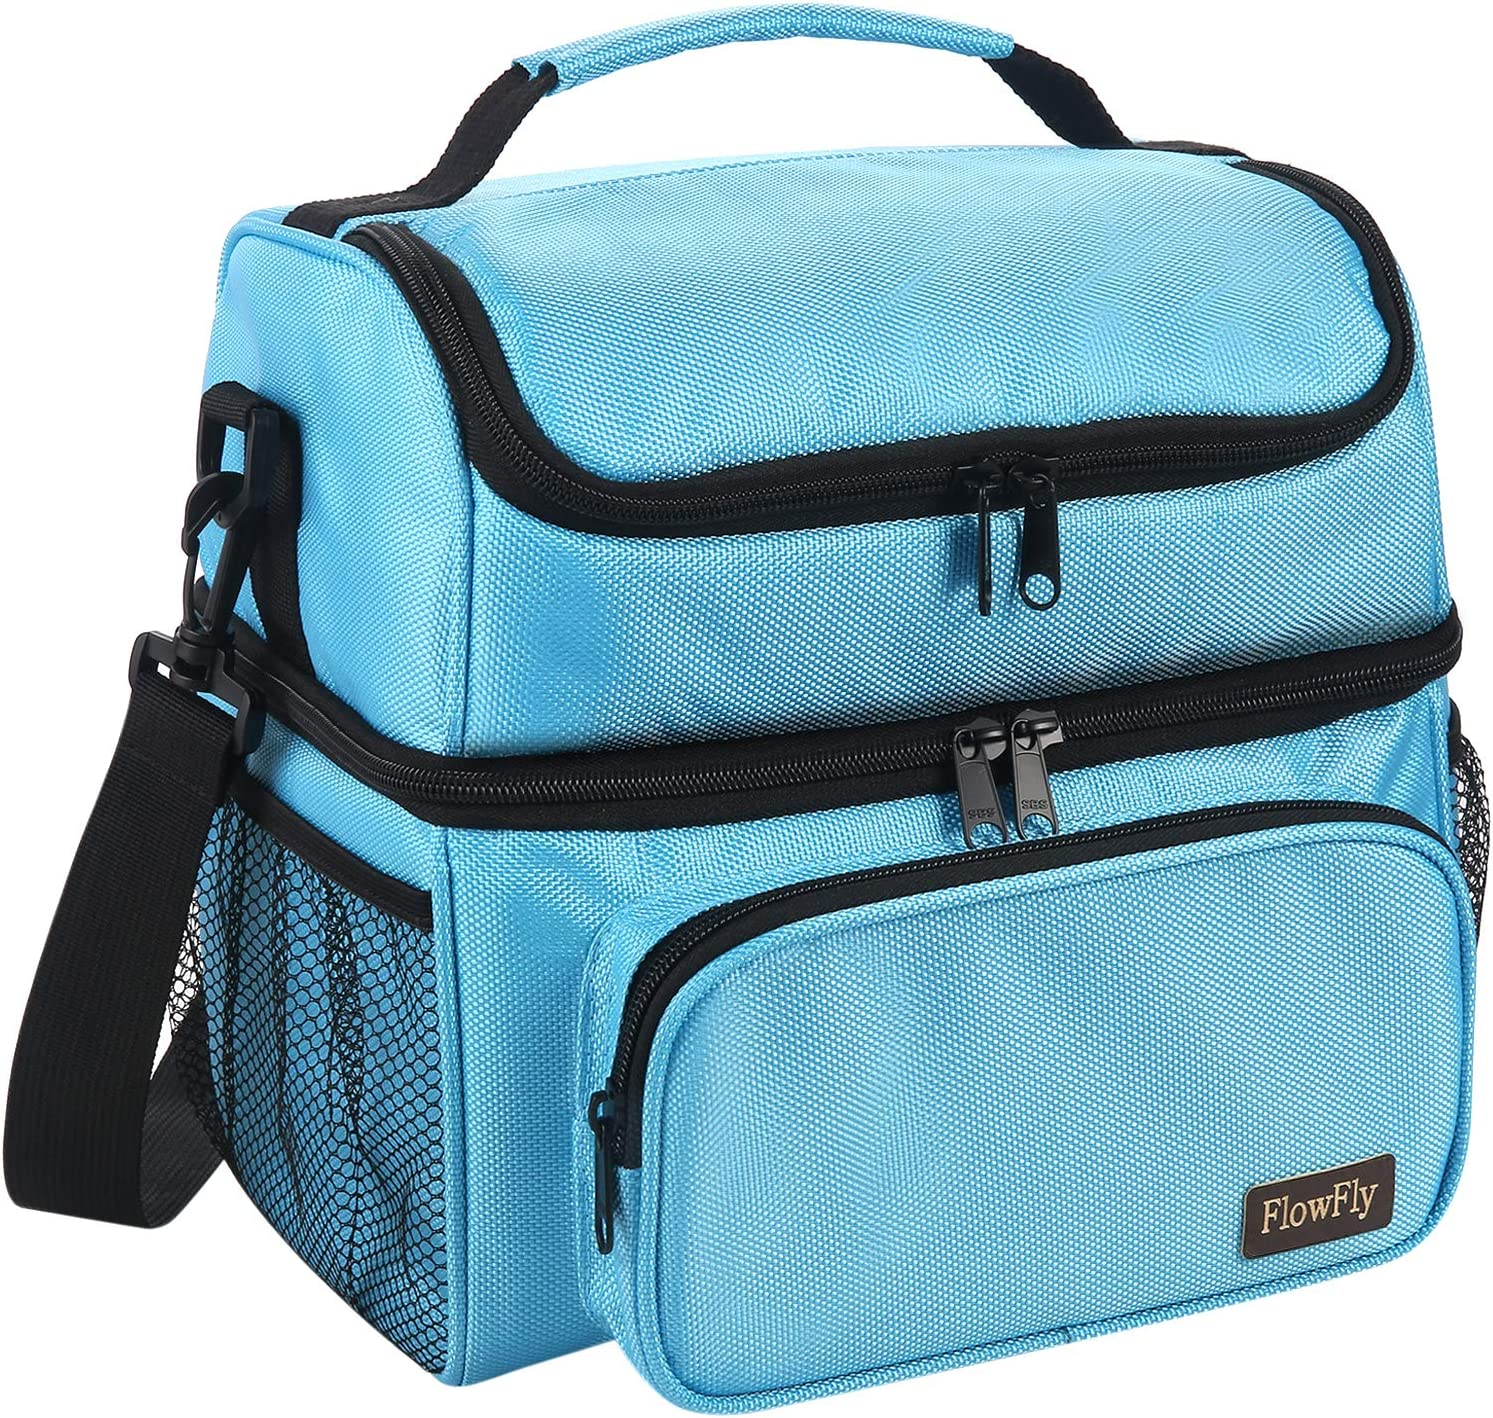 FlowFly Adult Lunch Bag Insulated 2 Roomy Compartment Thermal Lunch Box Large Reusable Double Decker Tote Cooler Bag with Detachable Shoulder Strap for Men Women kids,Blue